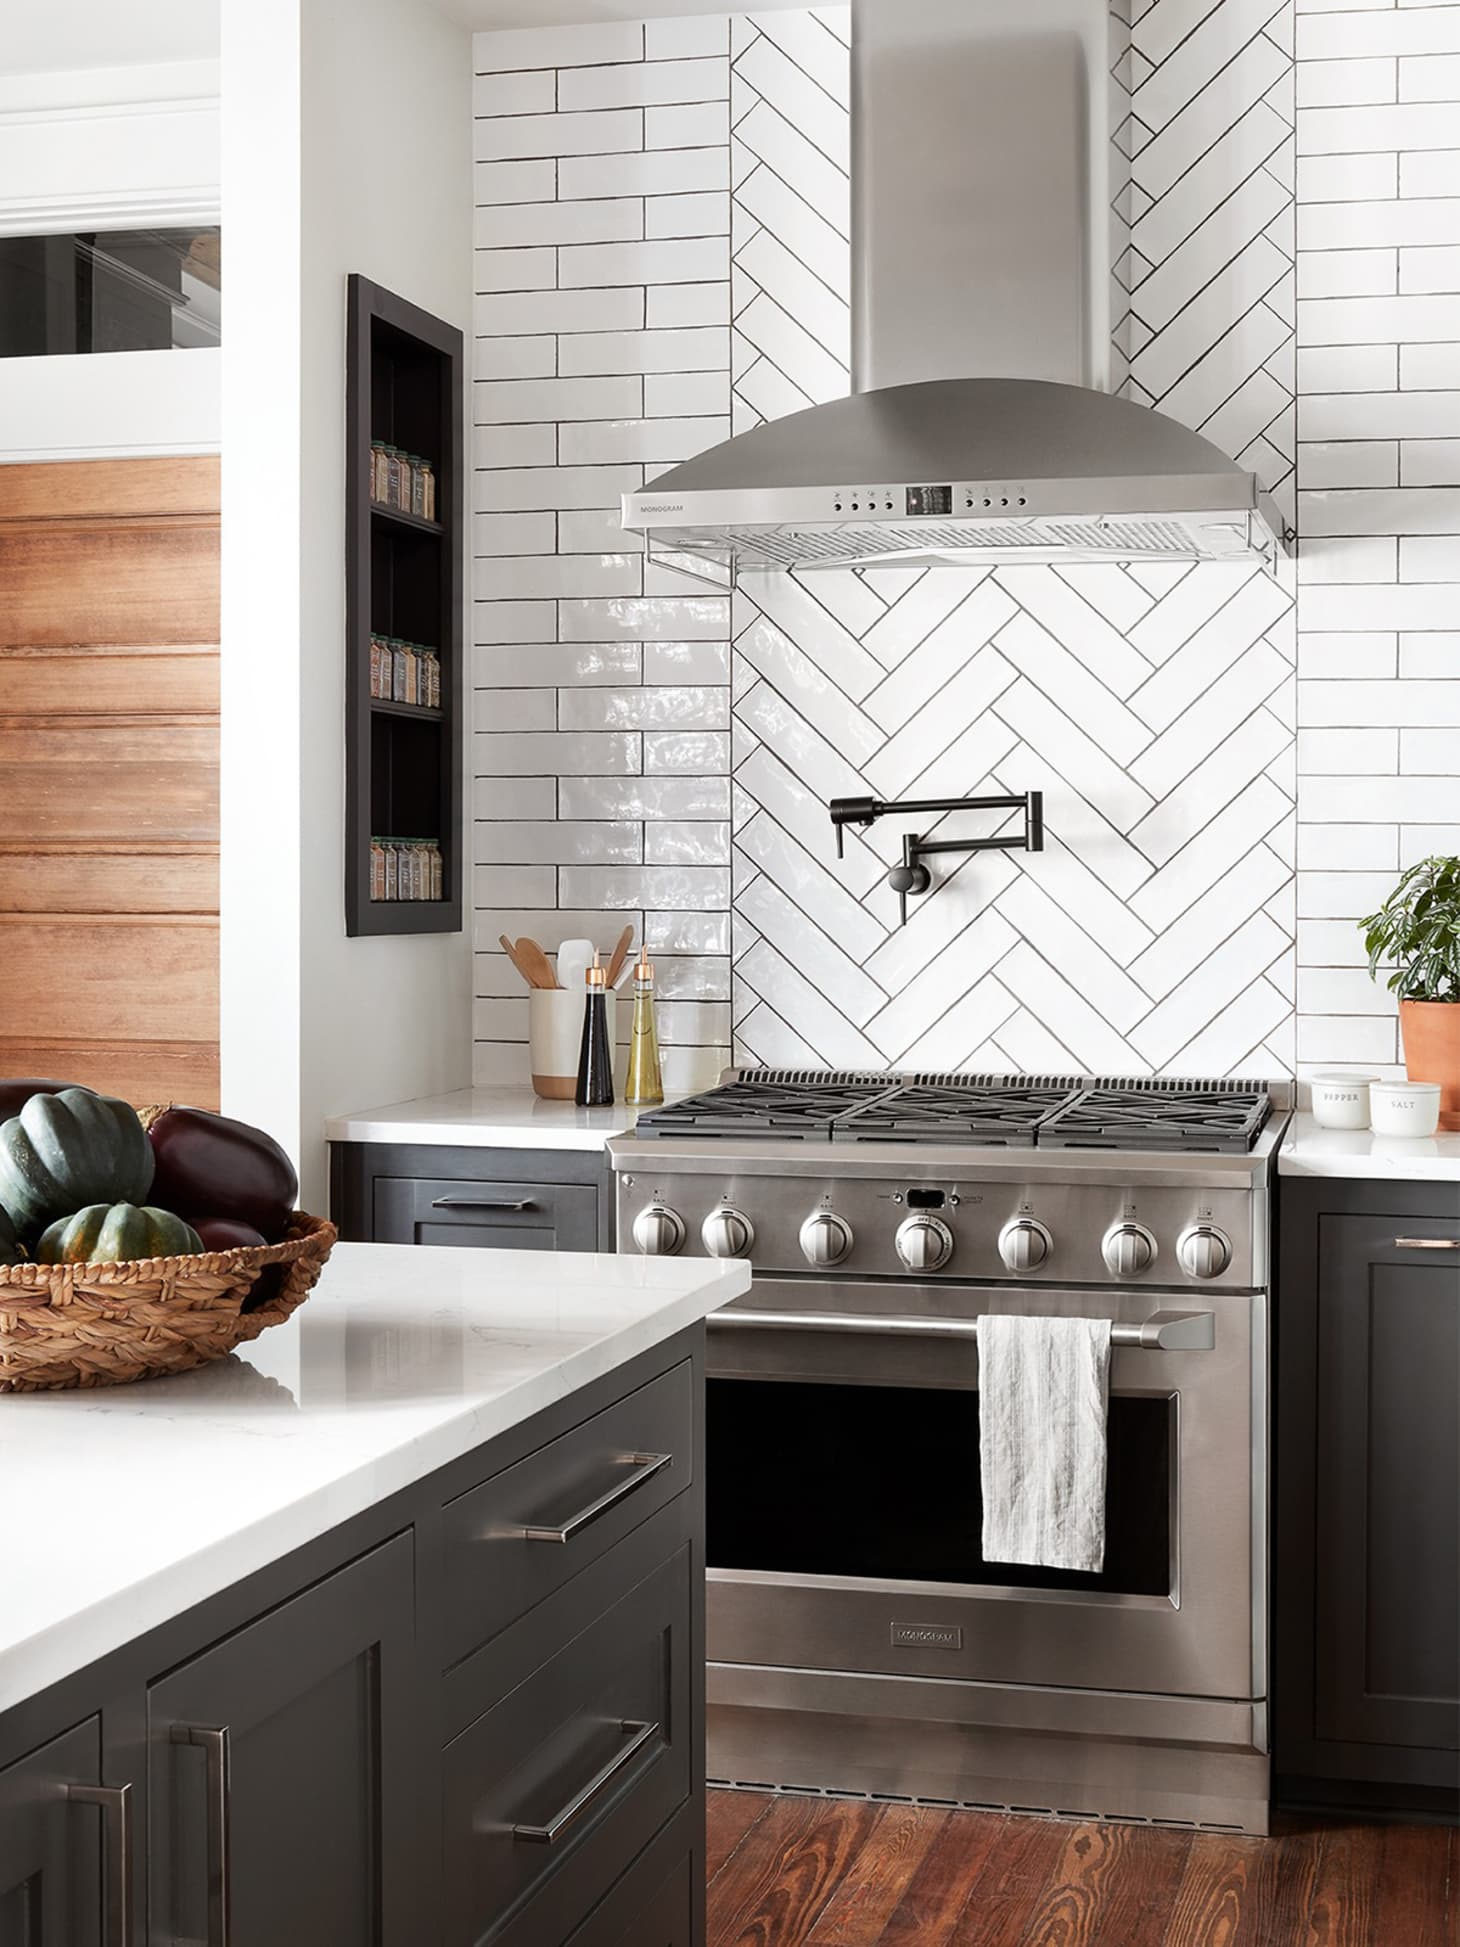 Best Fixer Upper Kitchen Designs From Joanna Gaines ...